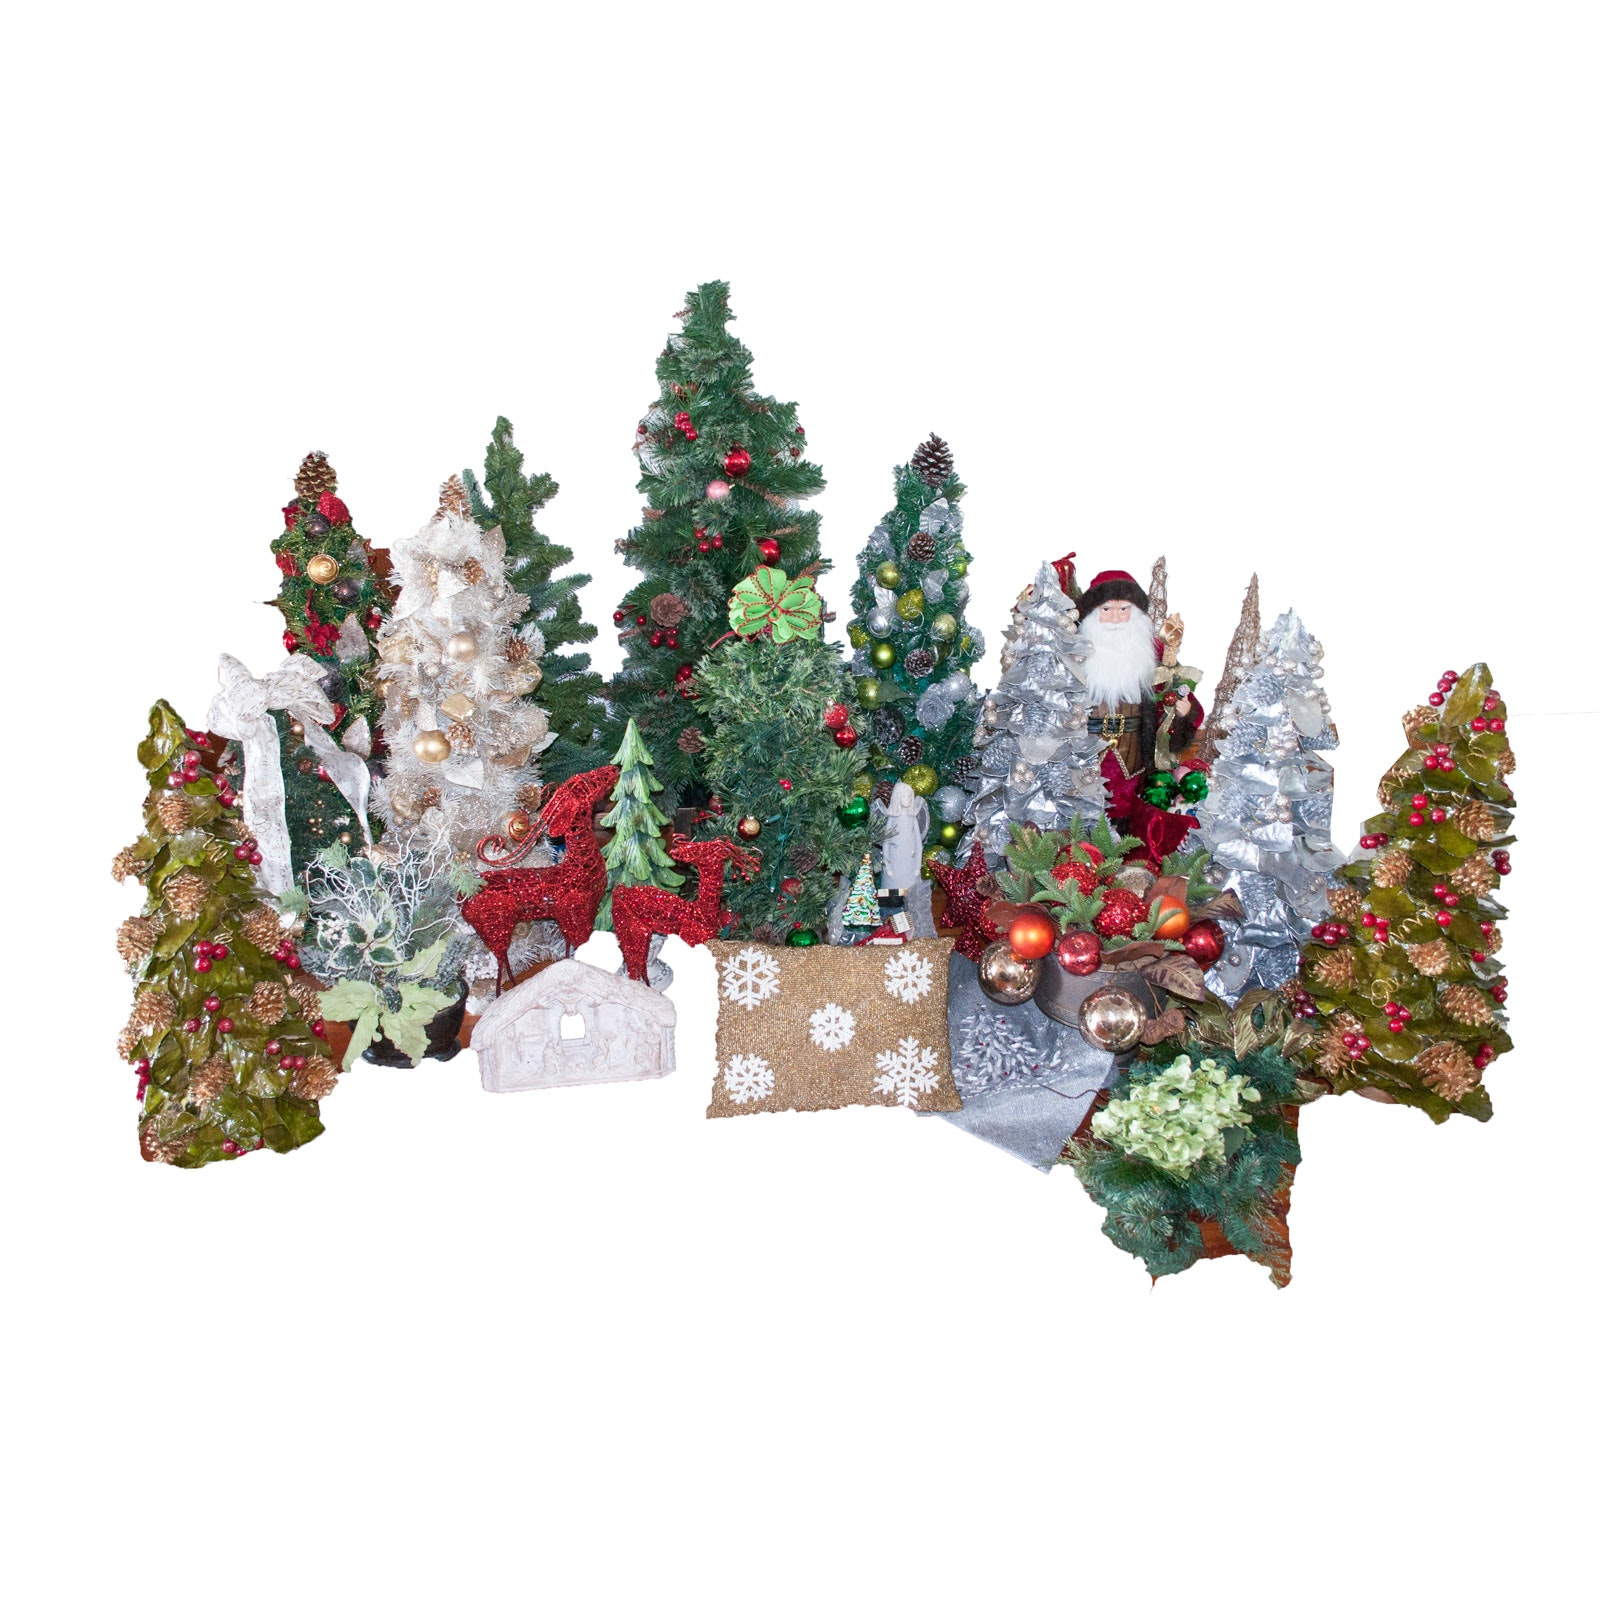 Decorated Christmas Trees and Décor